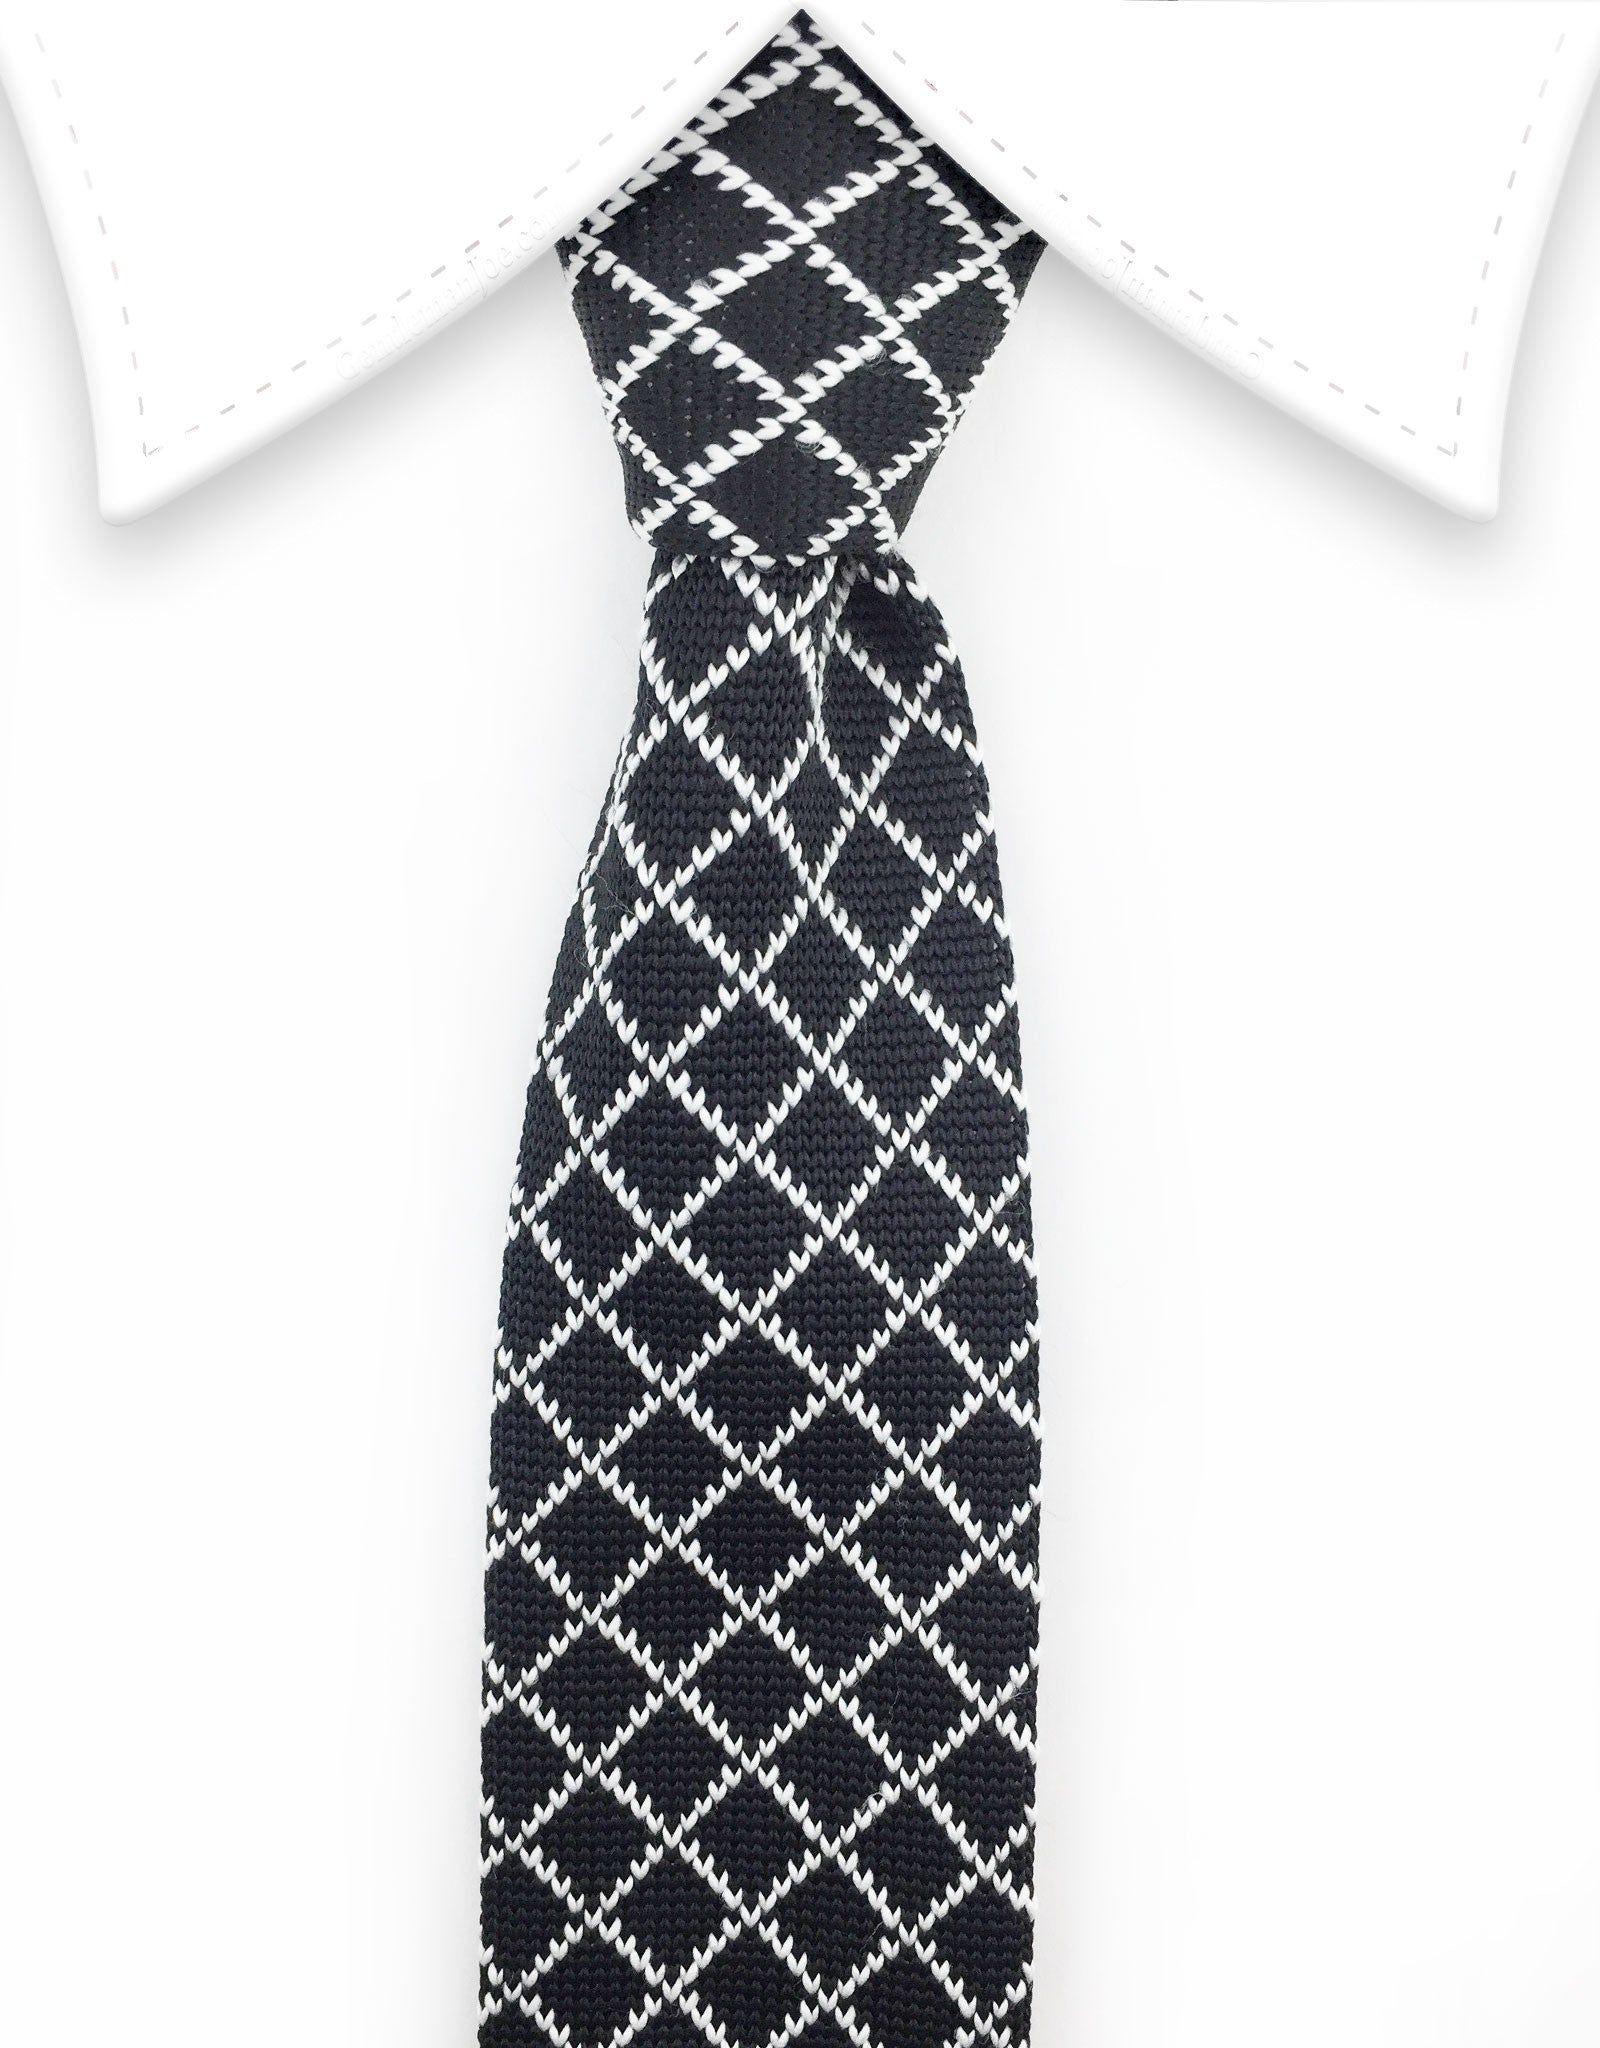 black and white knitted tie